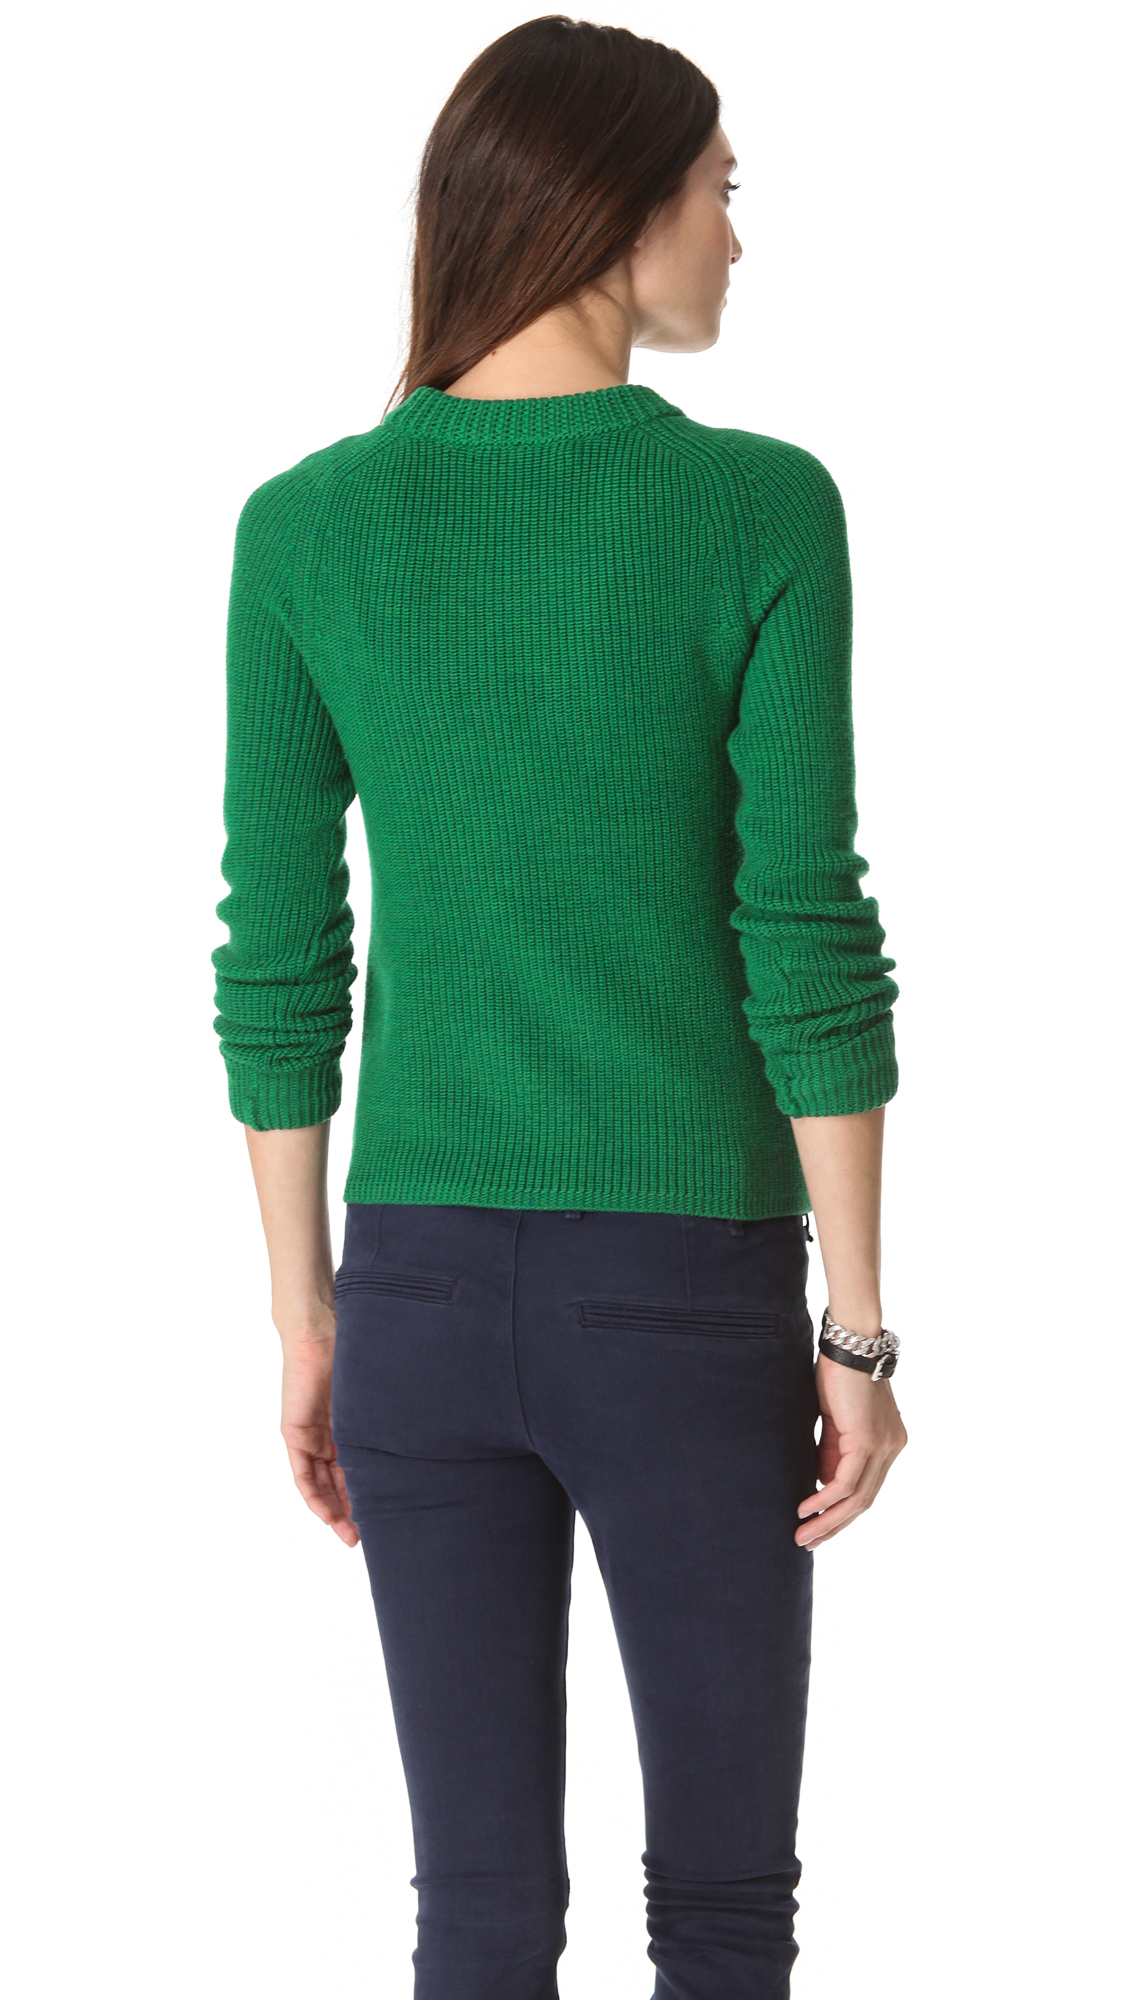 marc by marc jacobs uma sweater in green lyst. Black Bedroom Furniture Sets. Home Design Ideas